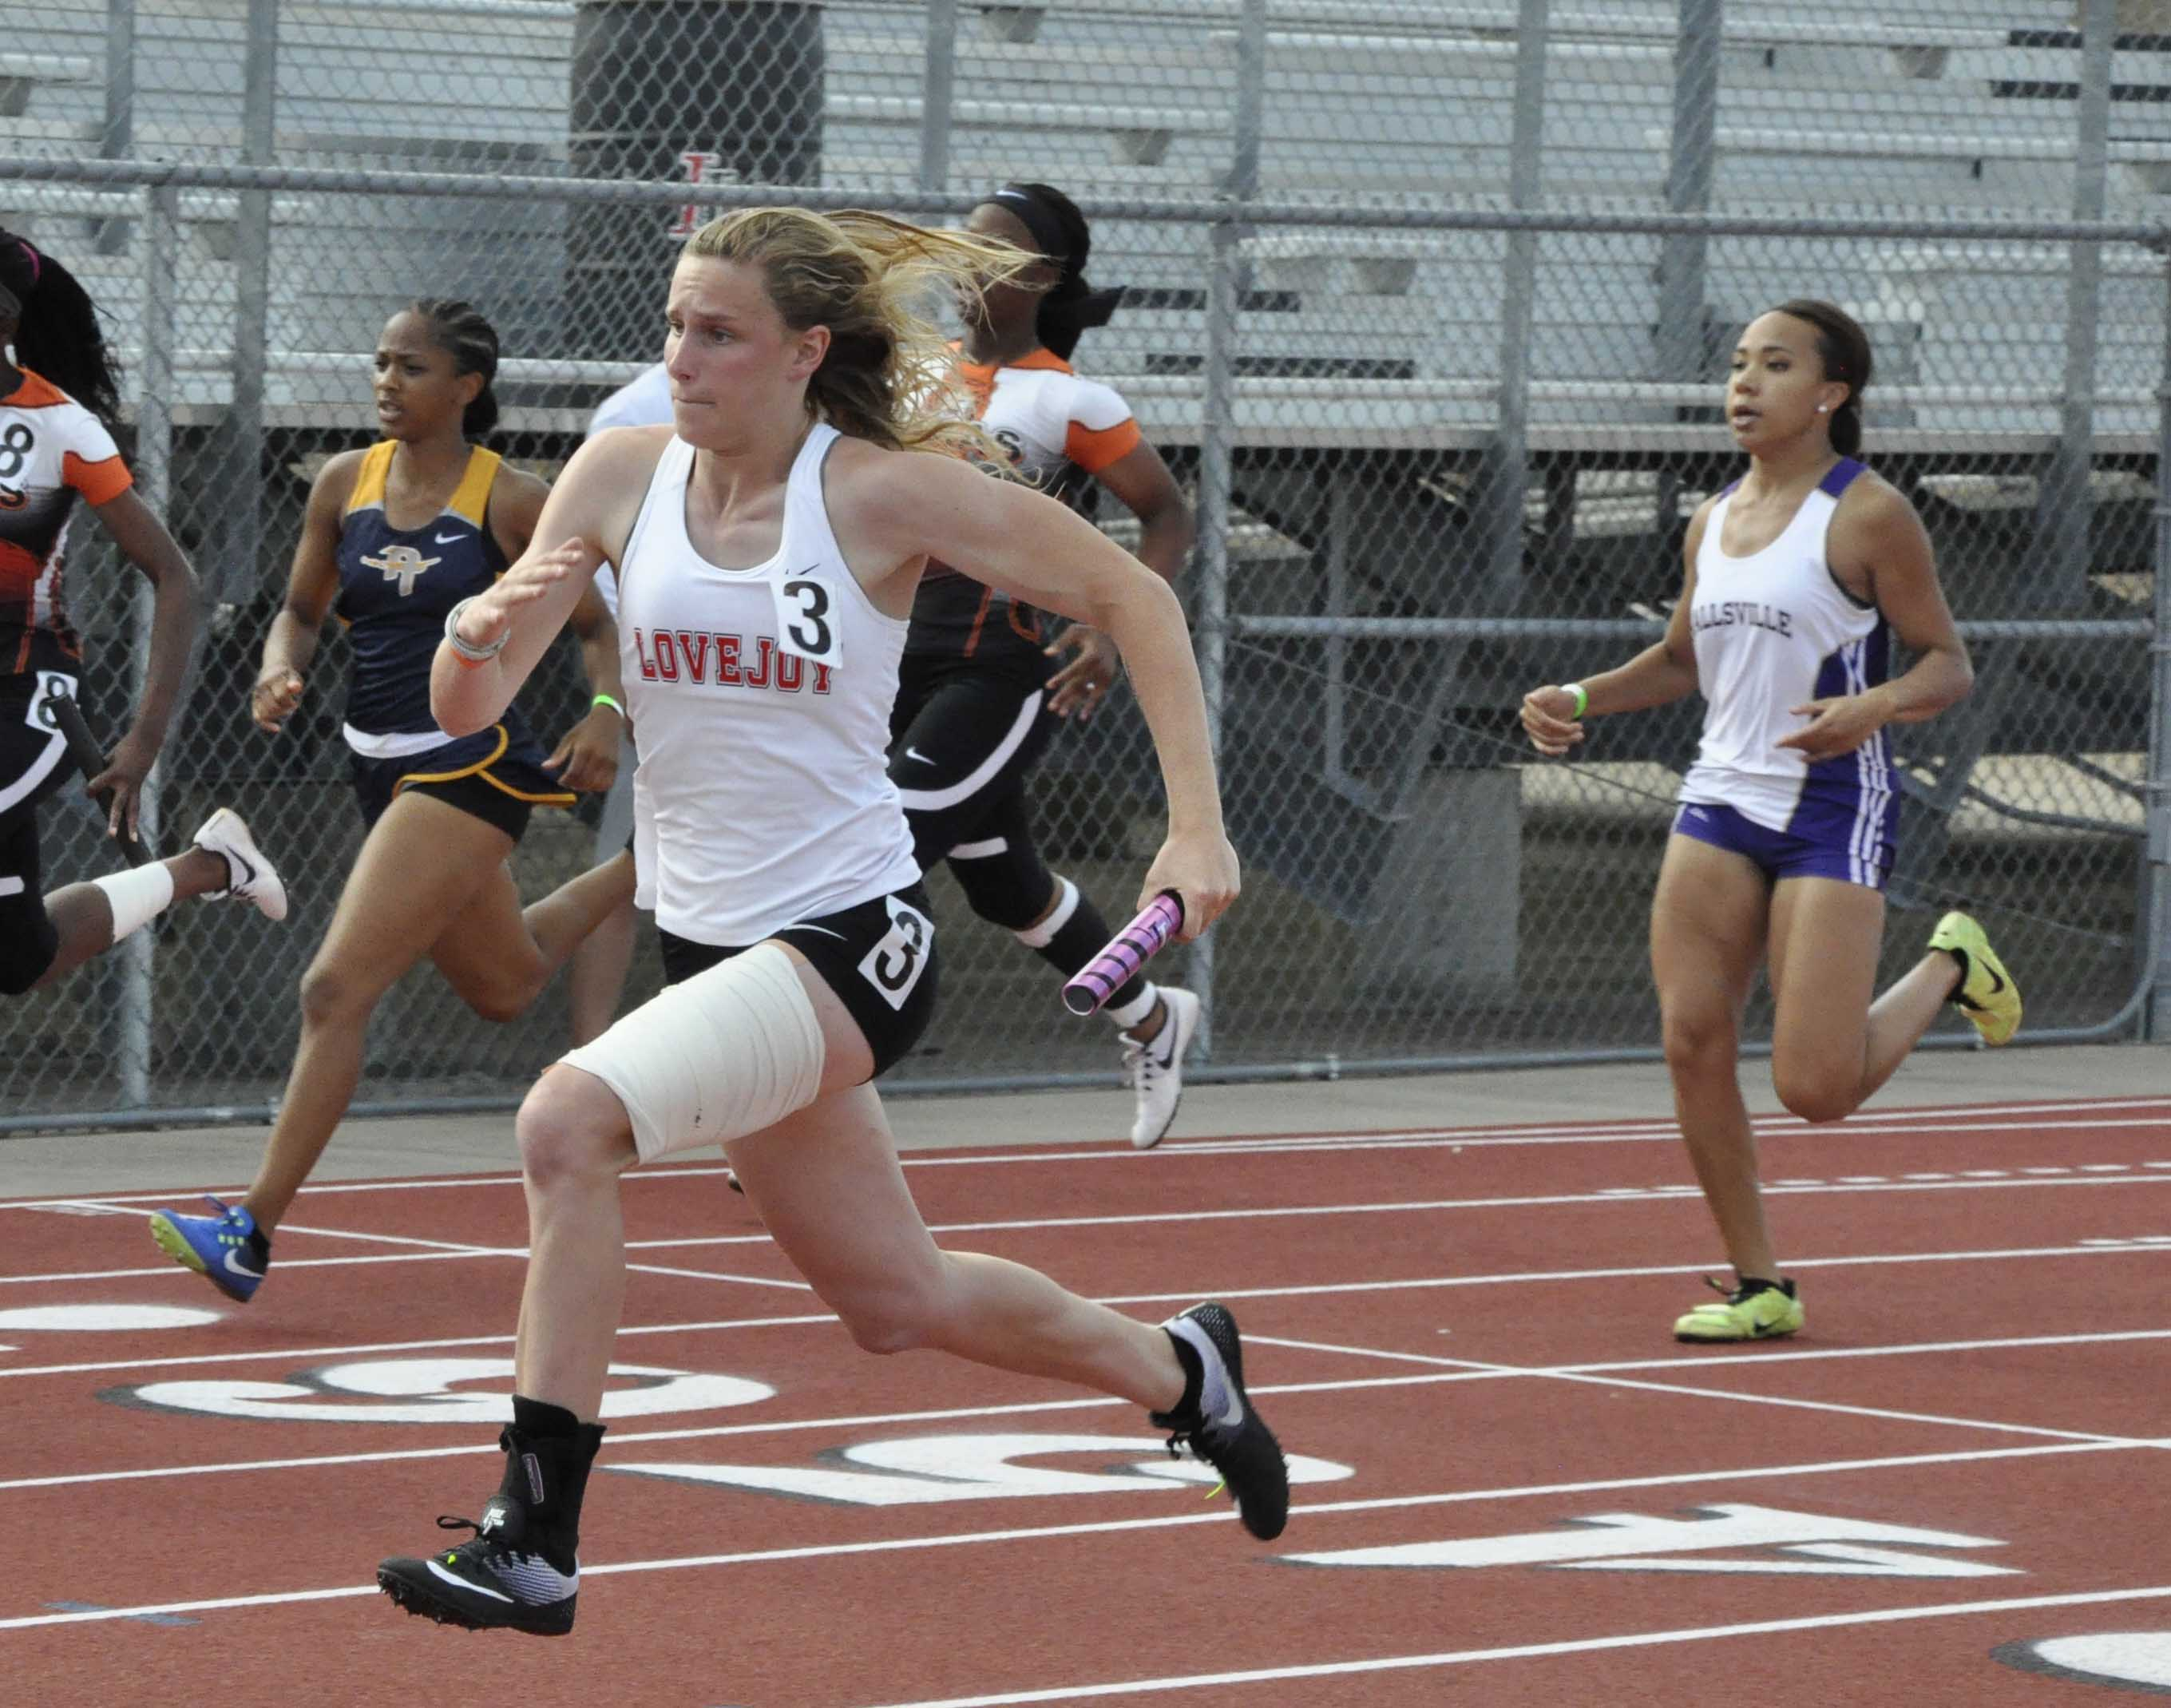 Junior Grace Ridgeway sprints ahead of her competitors in the 4x100 relay. The 4x100 girls team advanced to regionals.